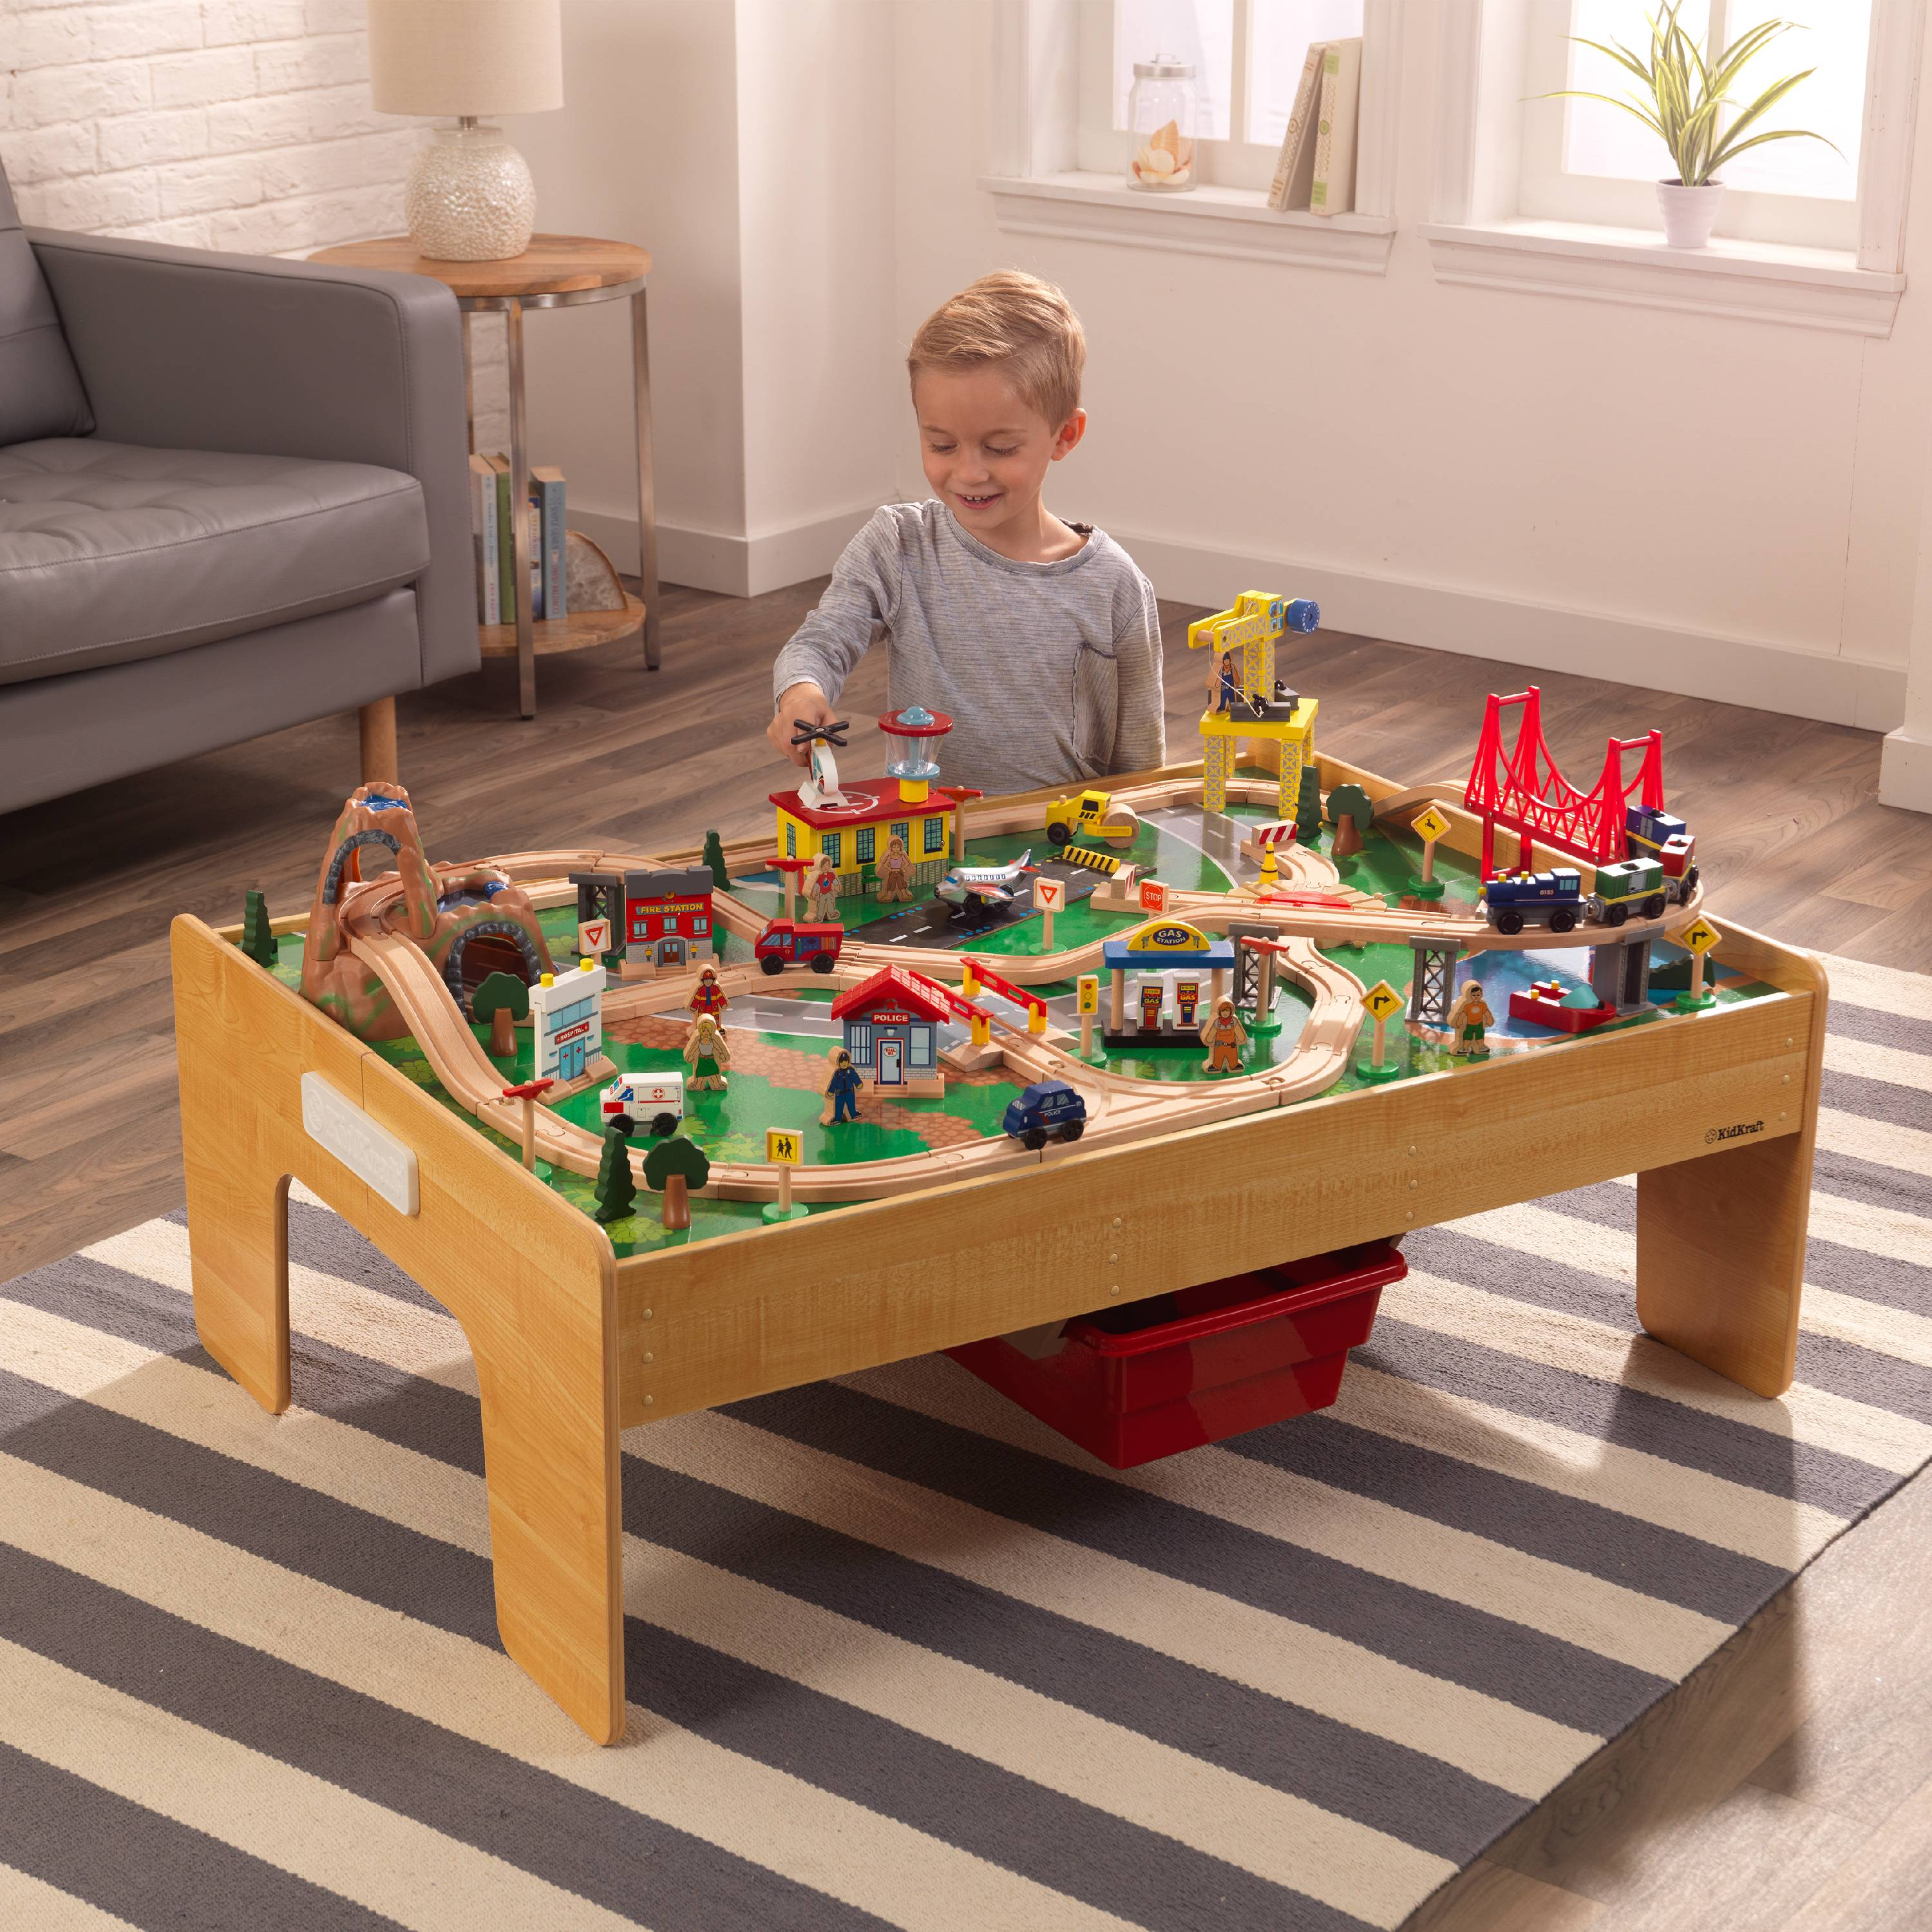 KidKraft Adventure Town Railway Train Set & Table with EZ Kraft Assembly™ with 120 accessories included